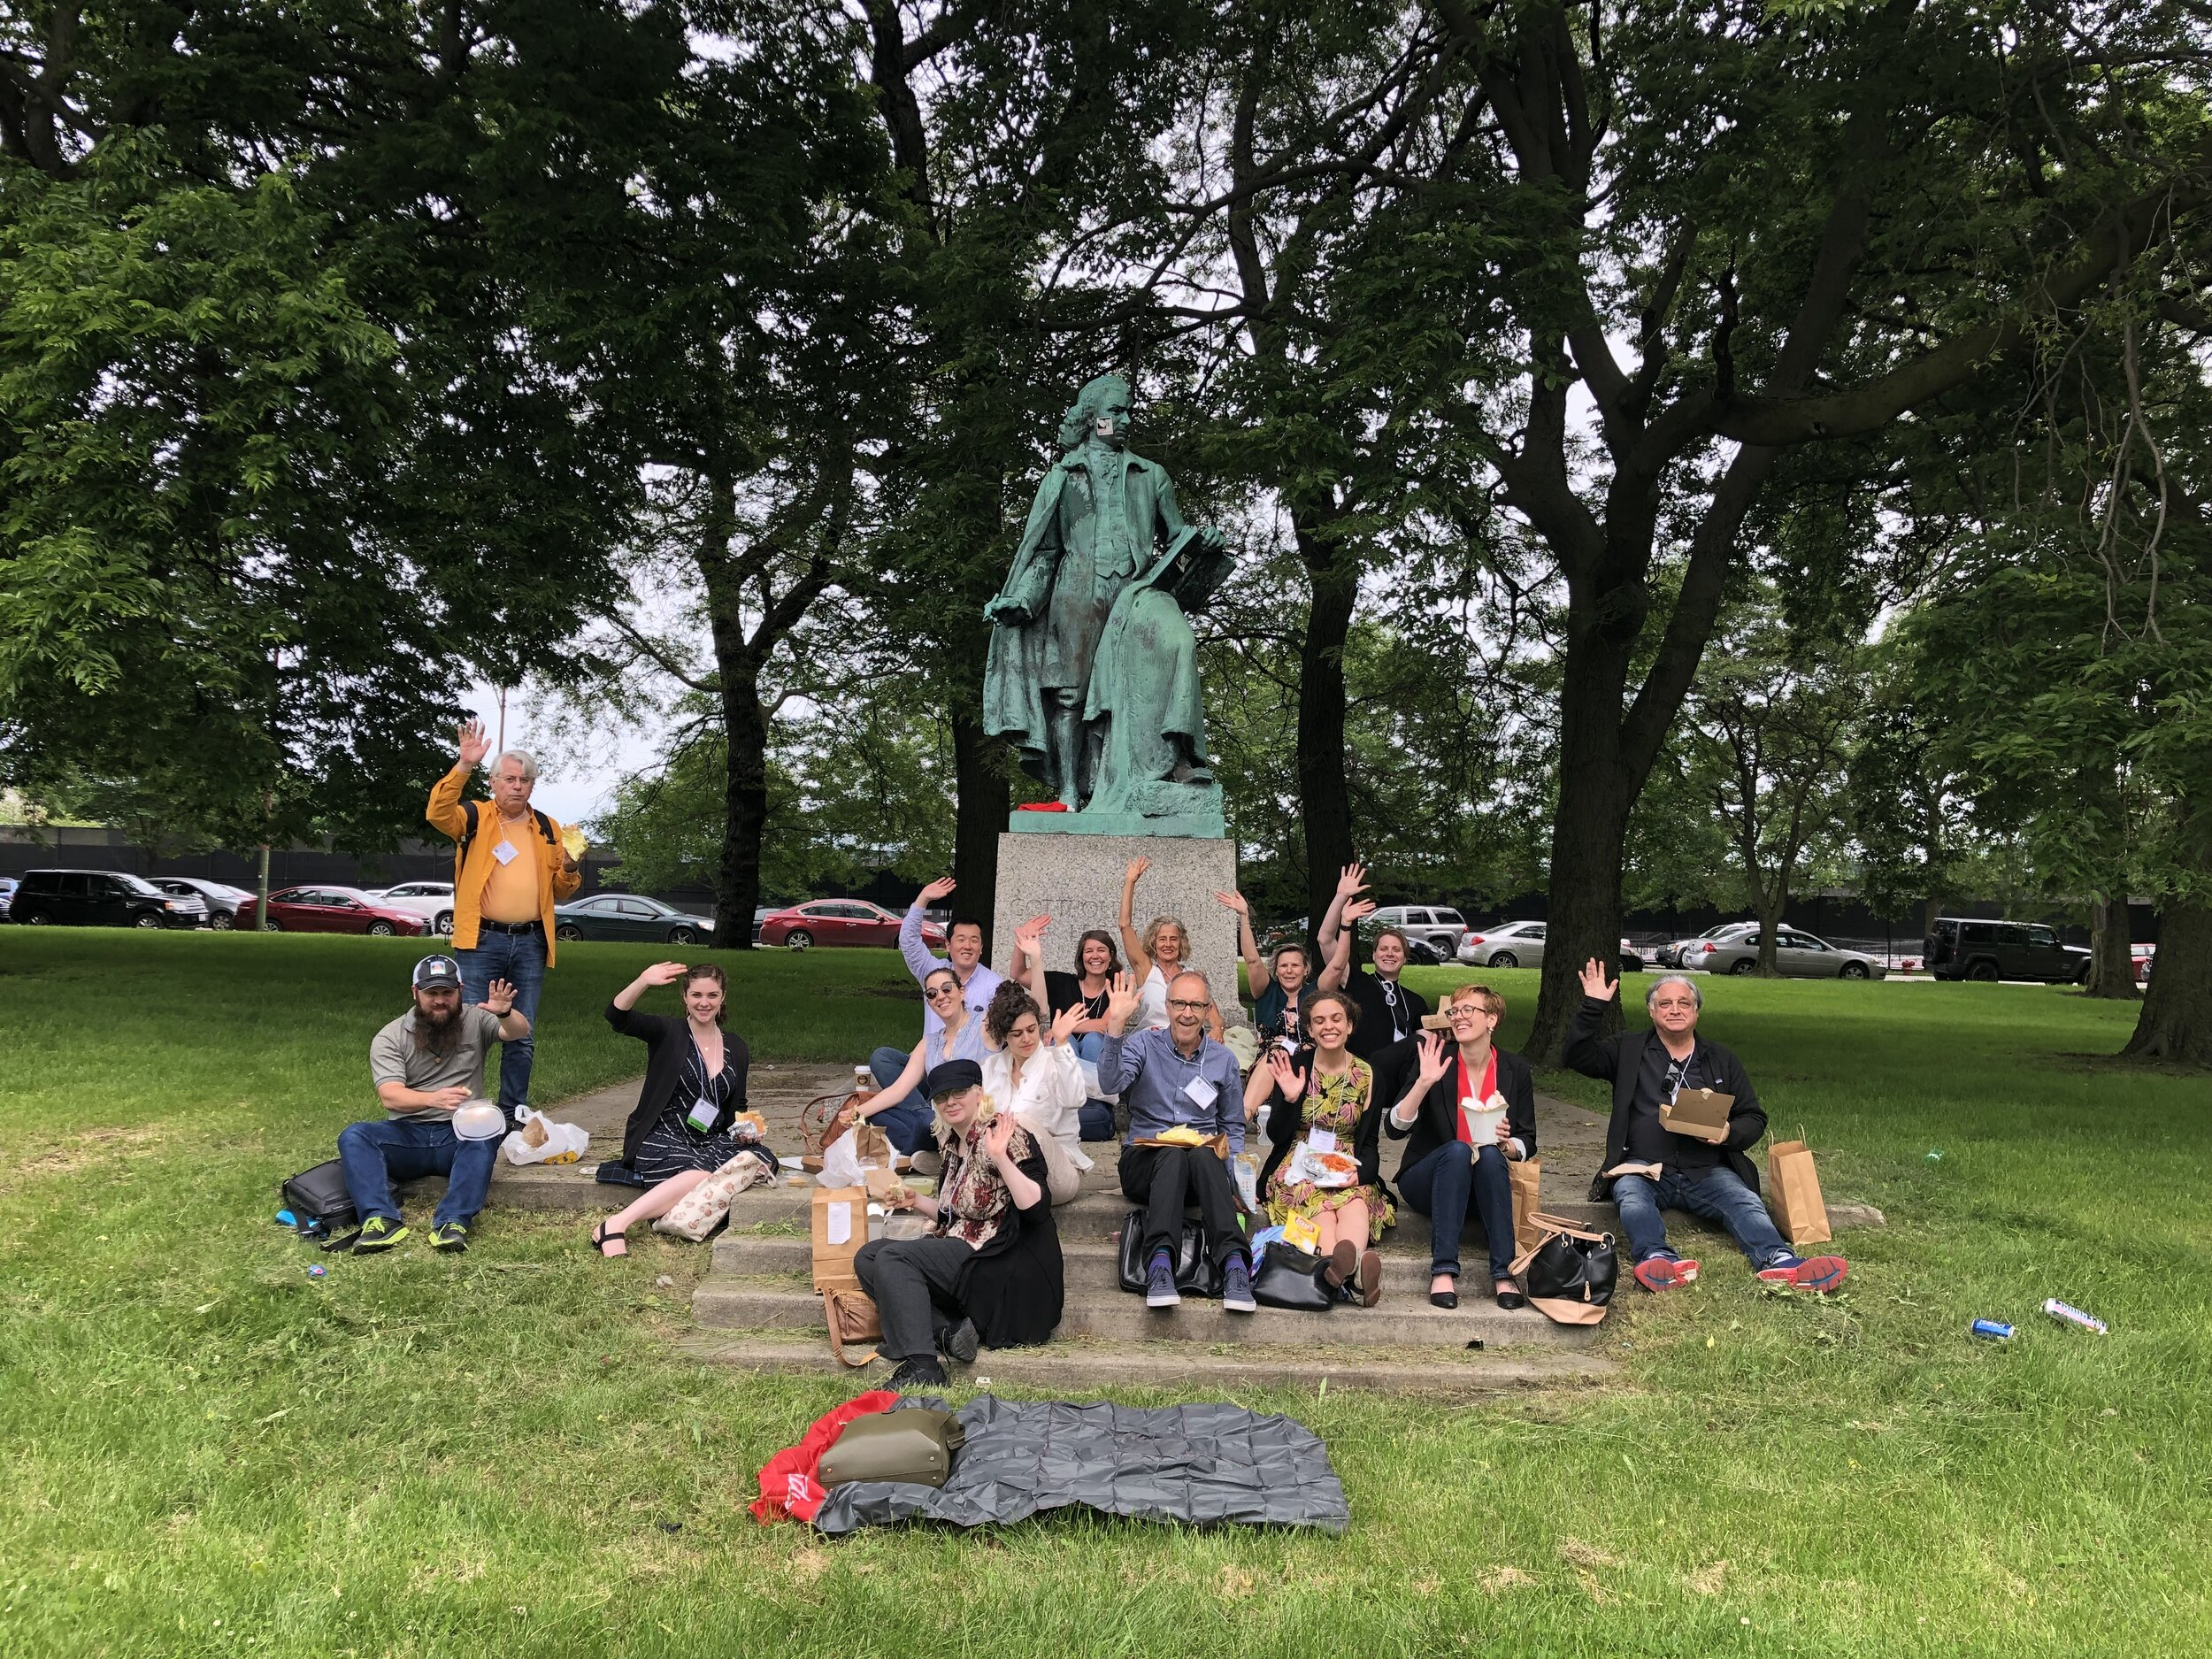 Lessing Picnic for LMDA Conference Attendees in 2019 - photo by LaRonika Thomas